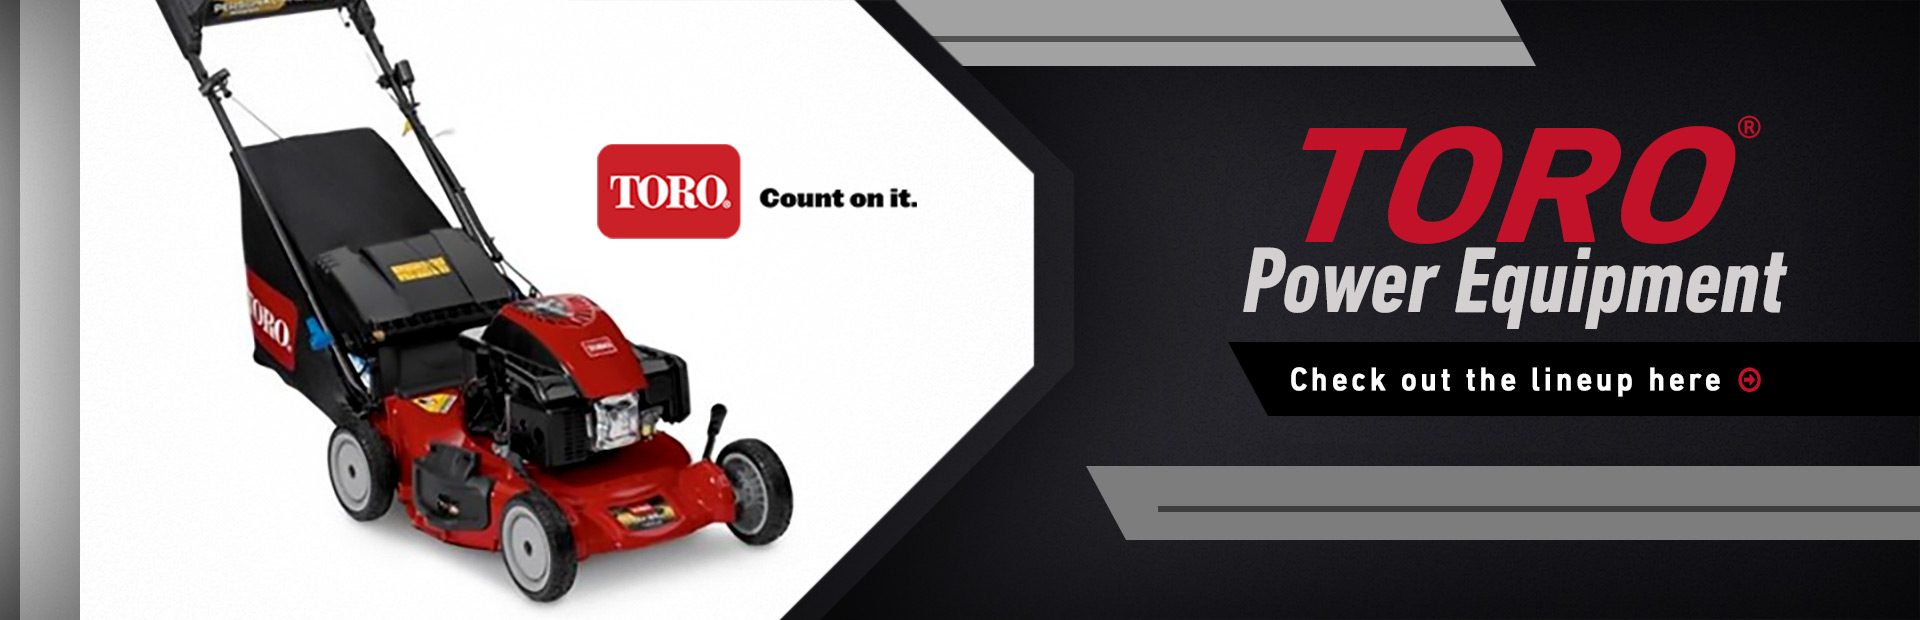 Toro Power Equipment: Click here to view the models.